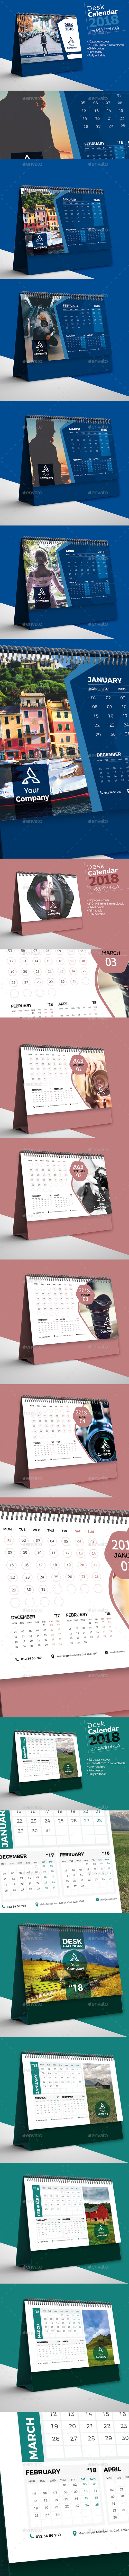 Desk Calendar 2018 Bundle V2 - Calendars Stationery